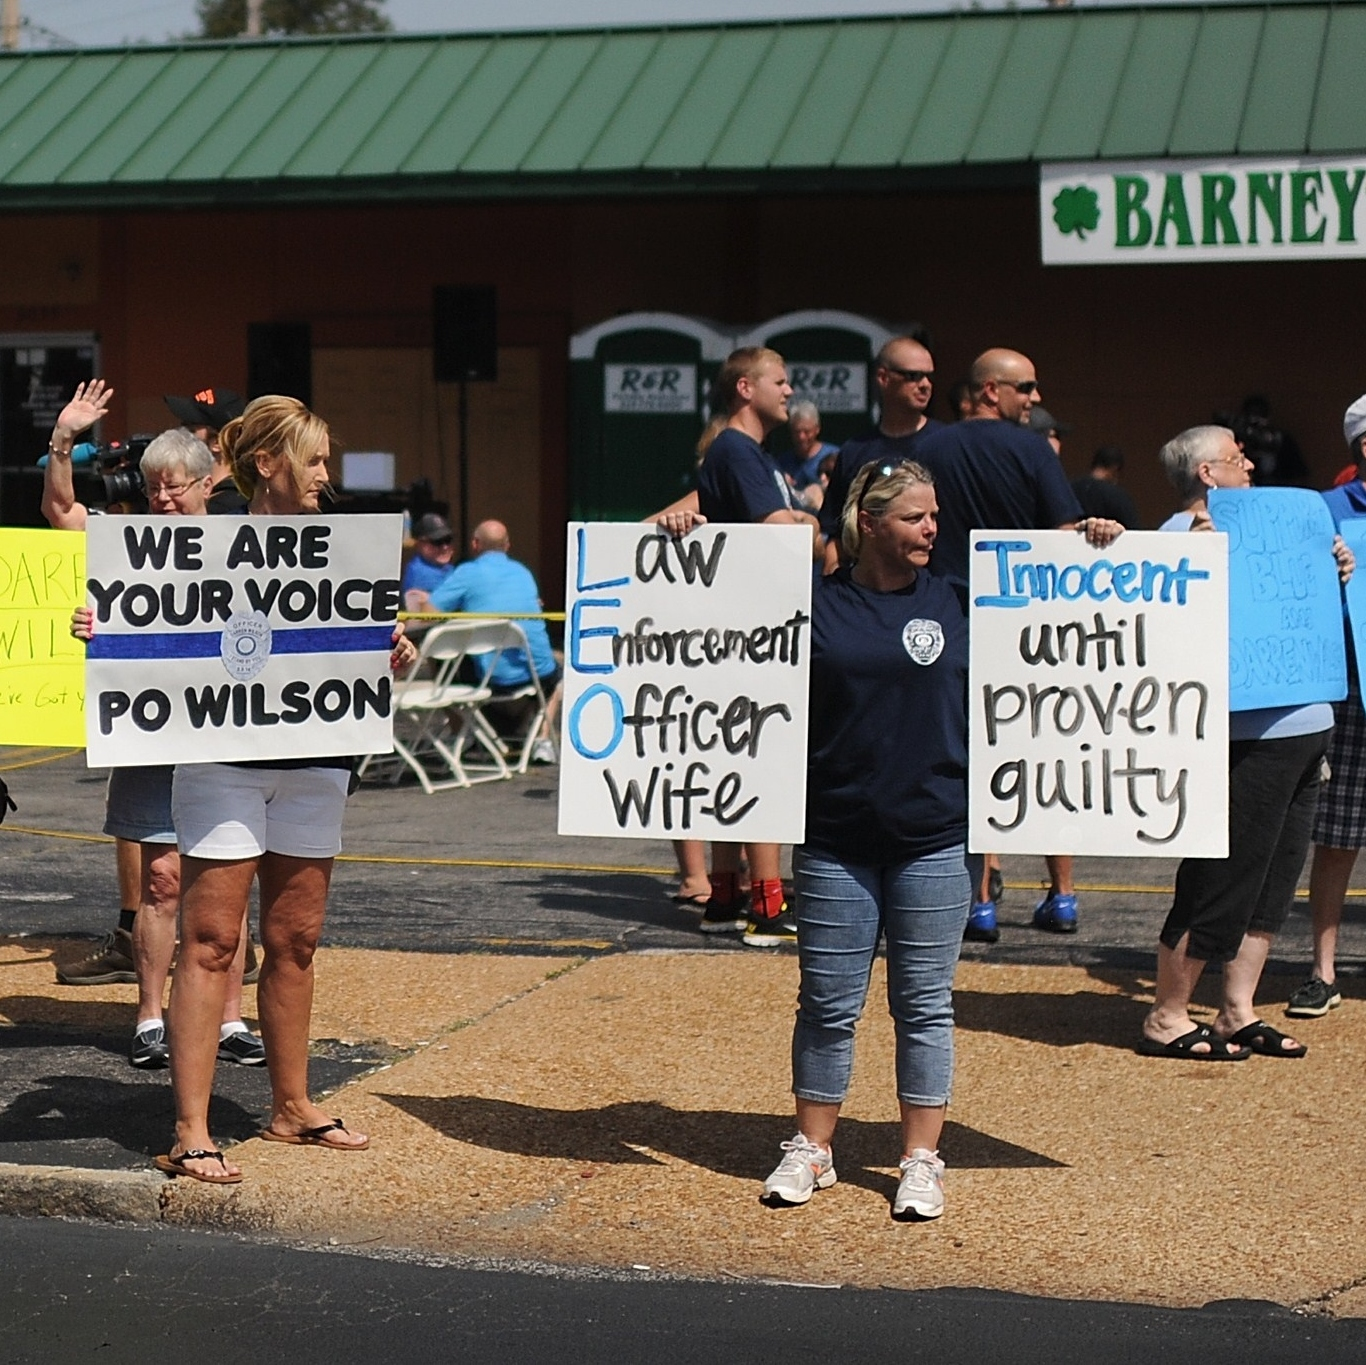 Protesters rally in support of Darren Wilson, the Ferguson police officer who shot Brown. Supporters have raised more than $400,000 for Wilson.